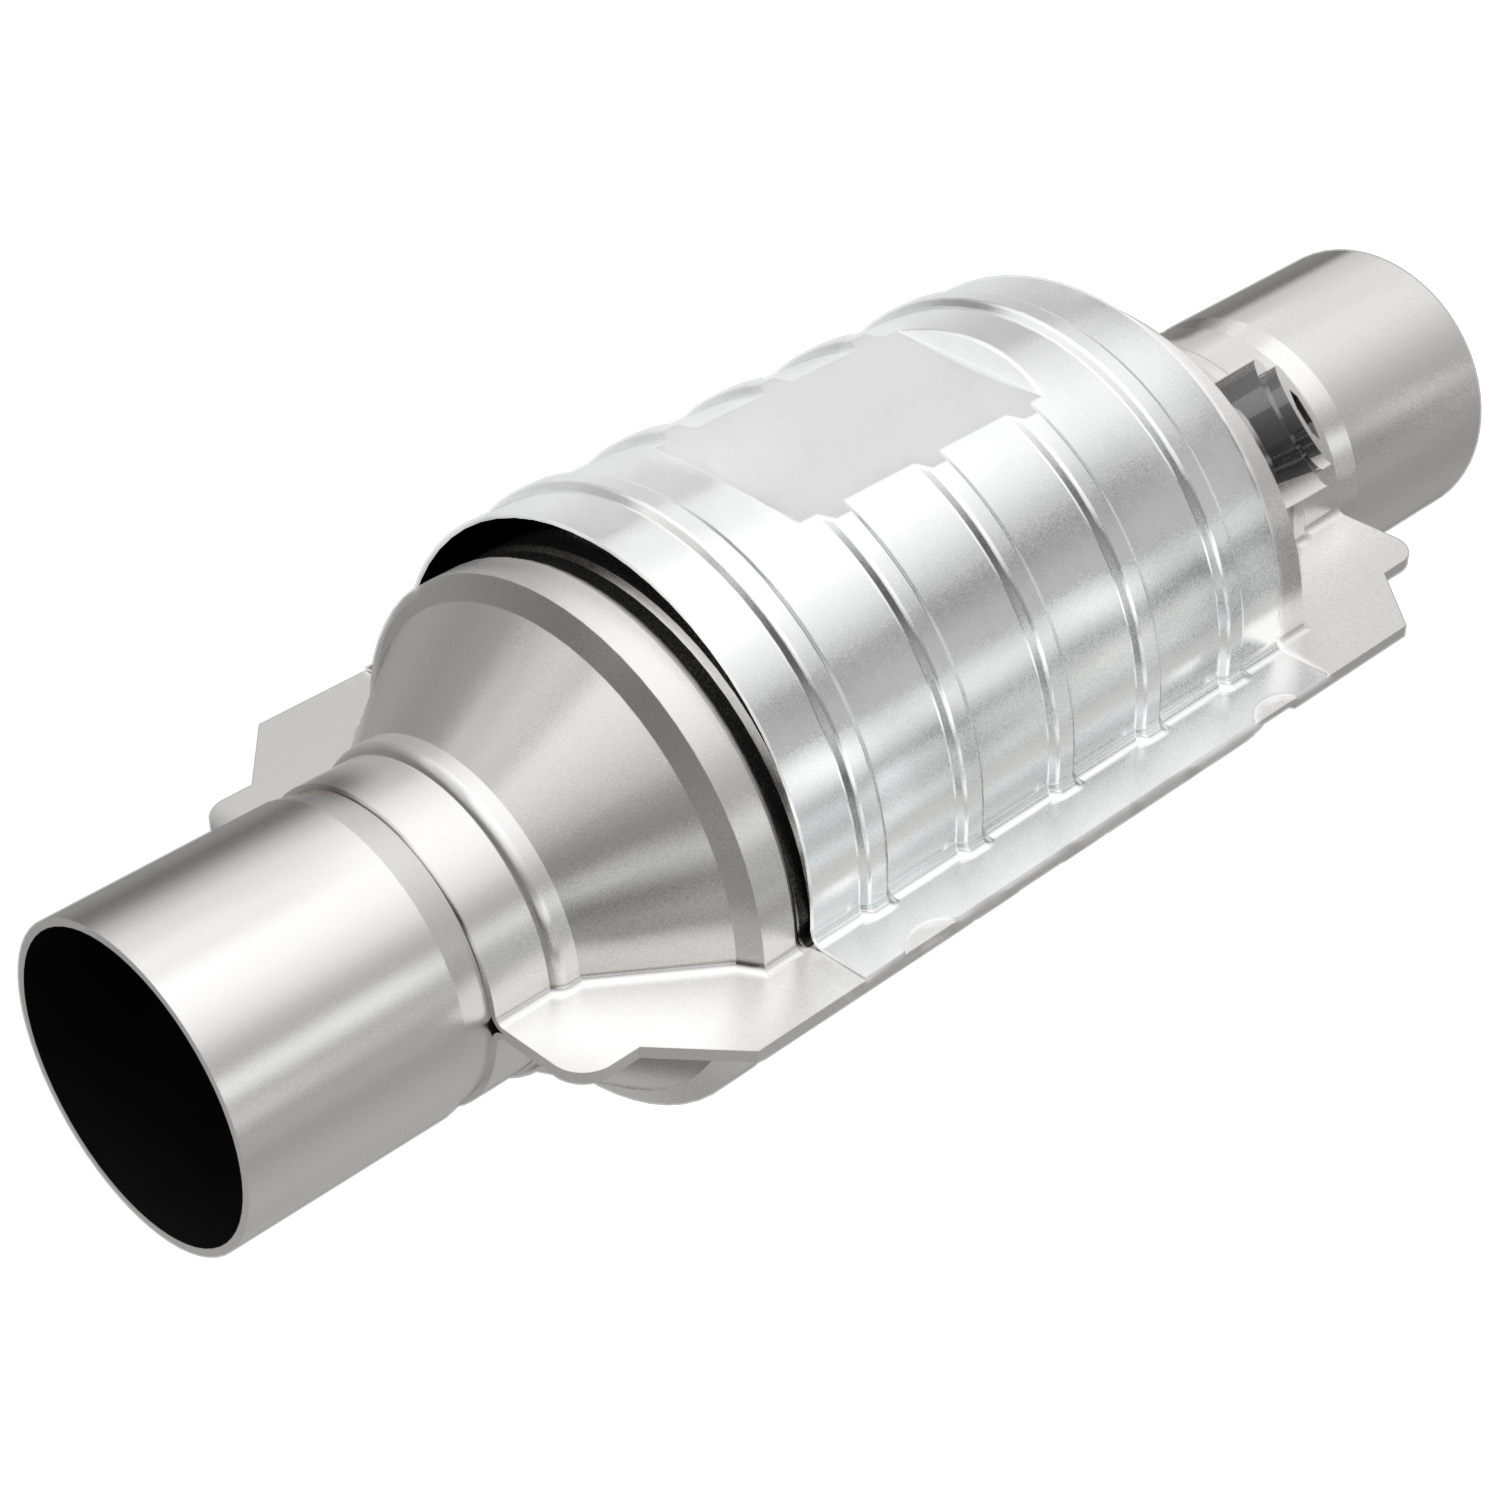 hight resolution of magnaflow universal hm grade federal catalytic converter free shipping